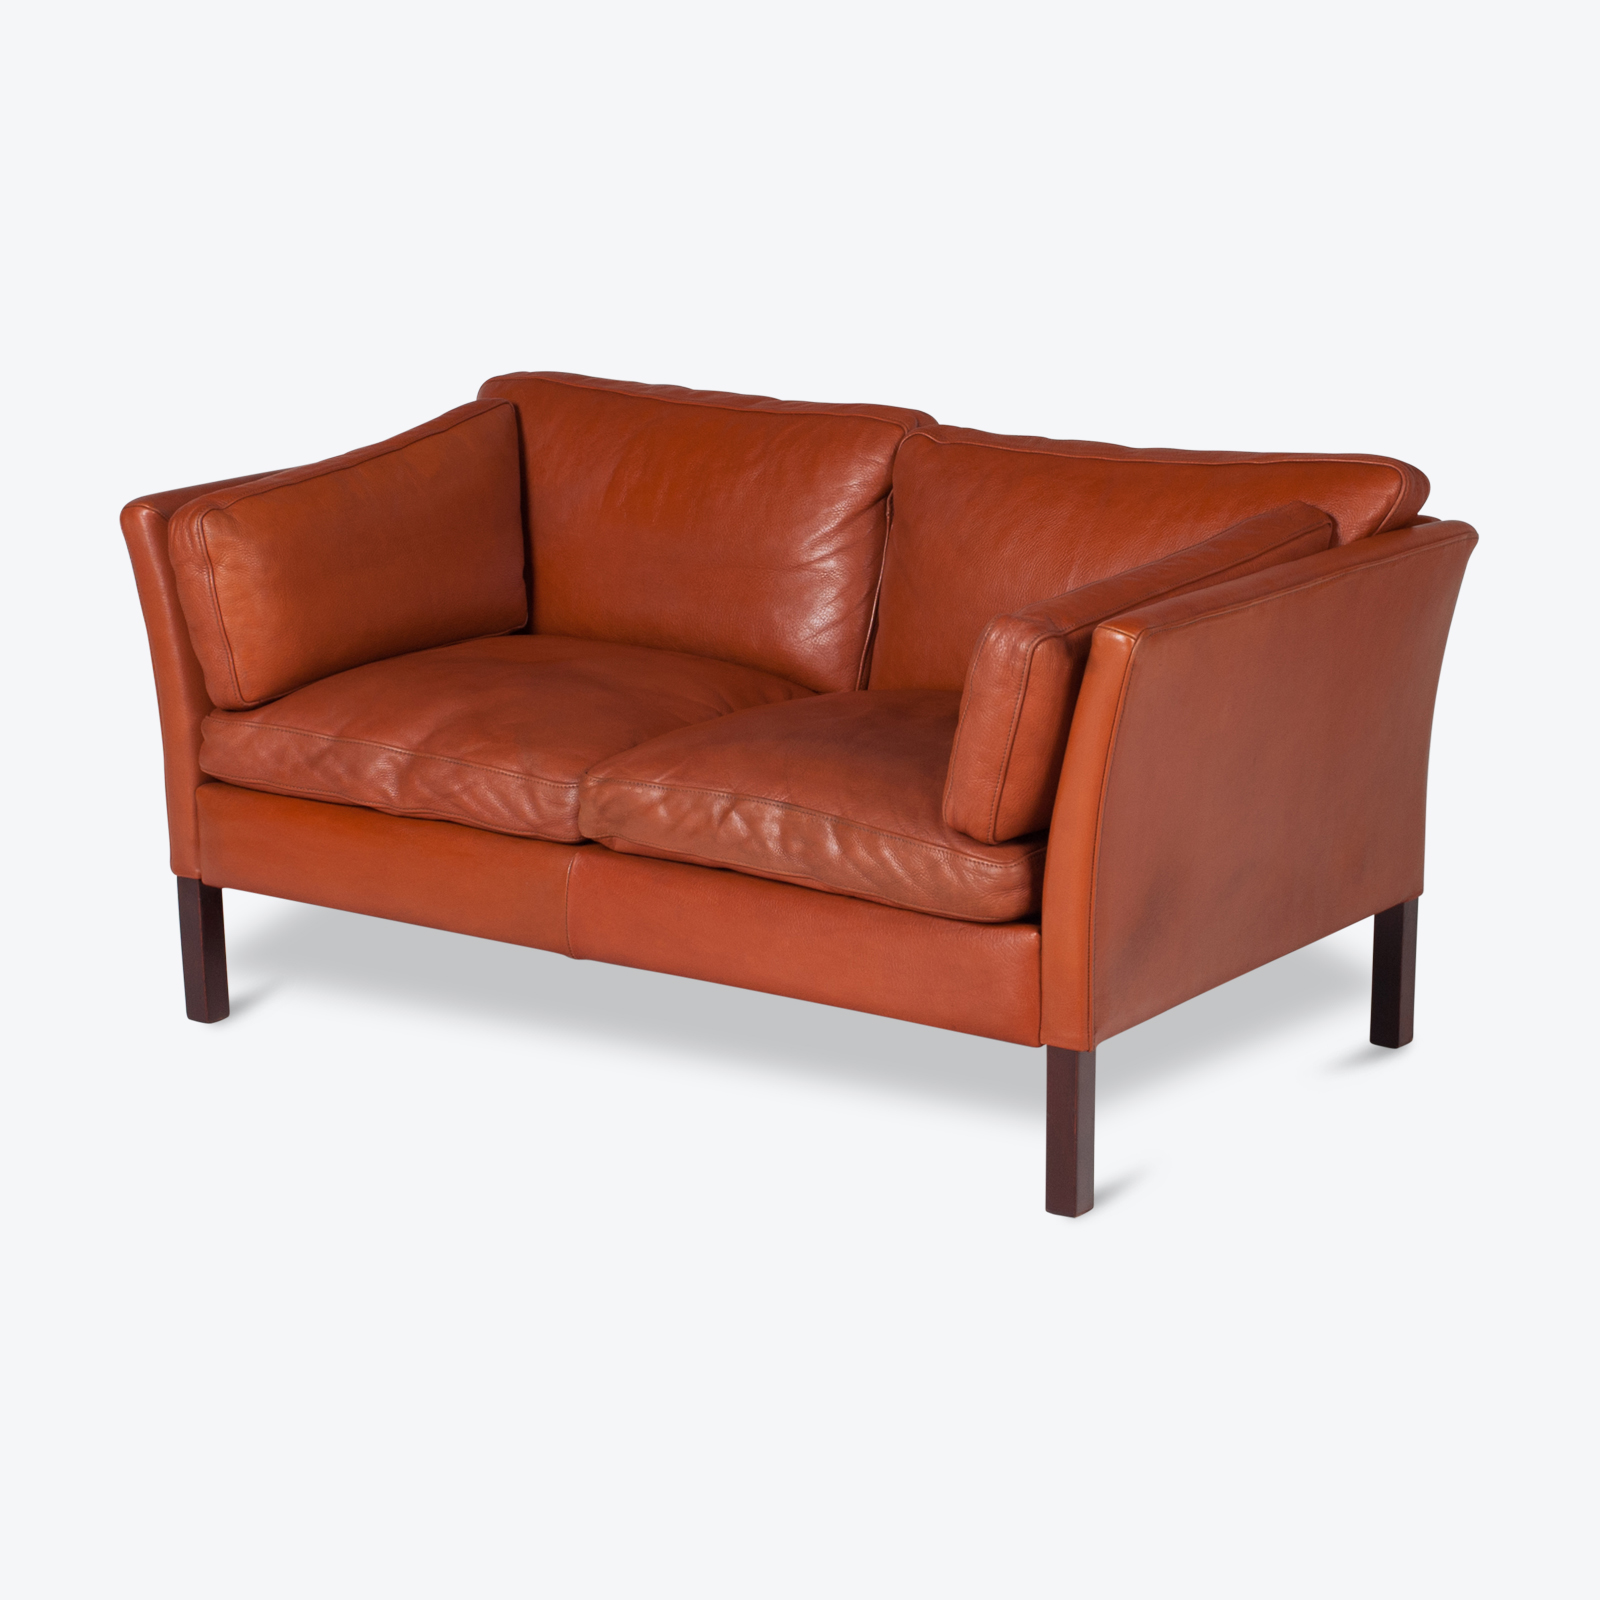 2 Seat Sofa By Stouby In Tan Leather, 1960s, Denmark Hero 1